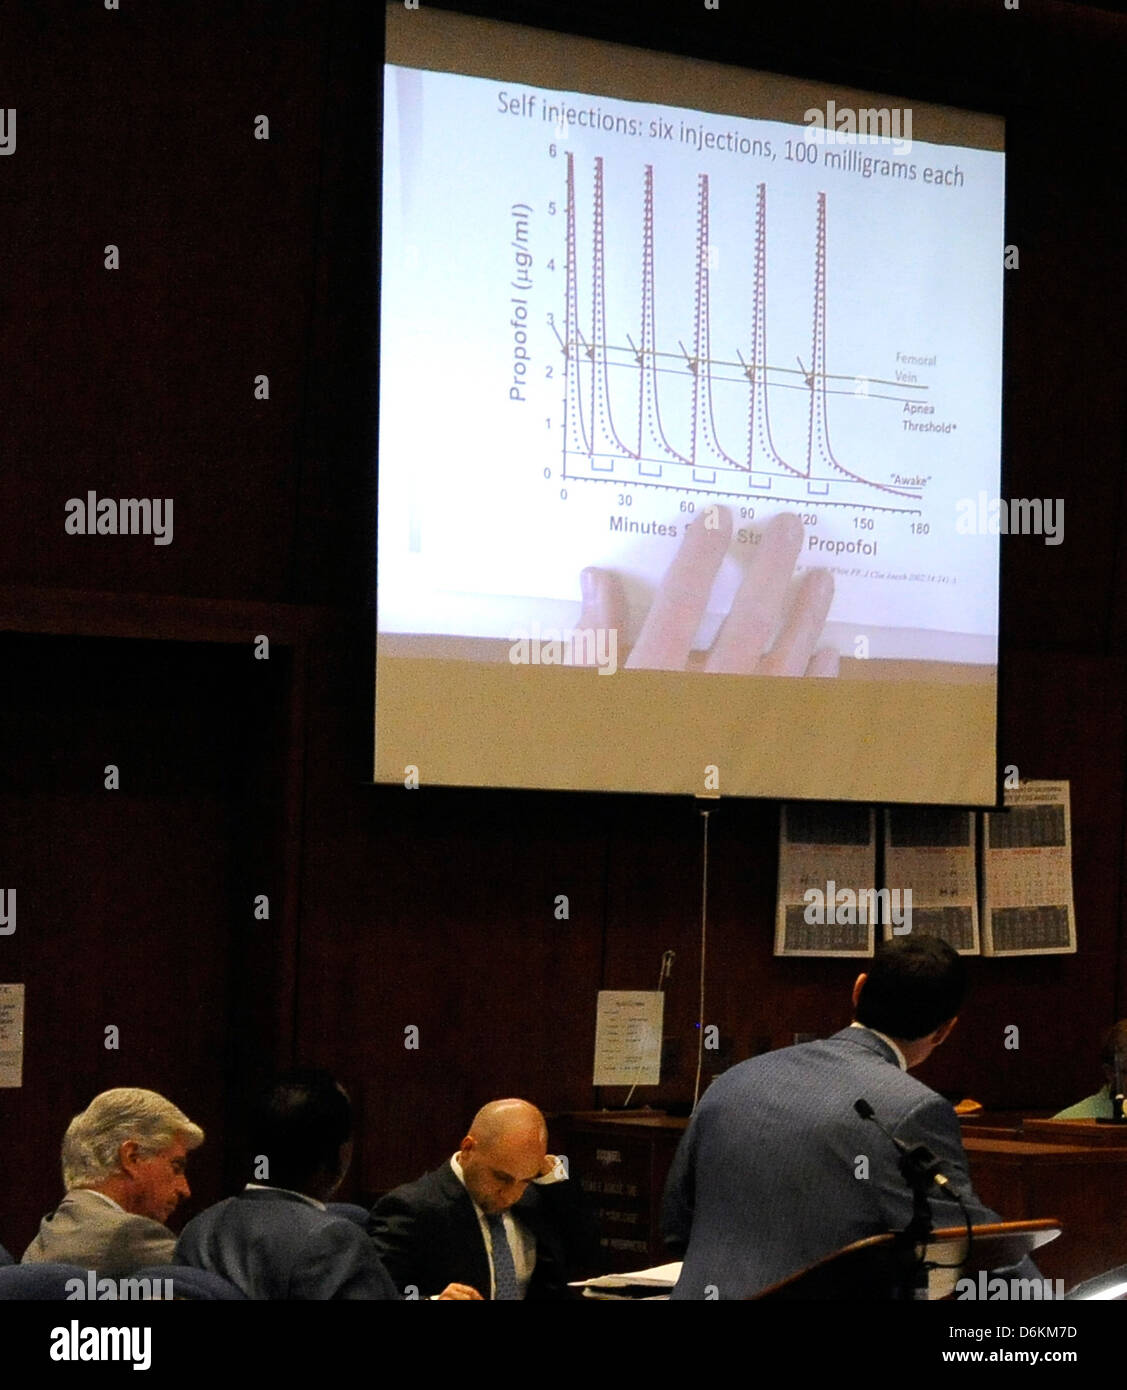 A chart showing propofol injections is projected onto a screen during the cross examination of propofol expert anesthesiology - Stock Image